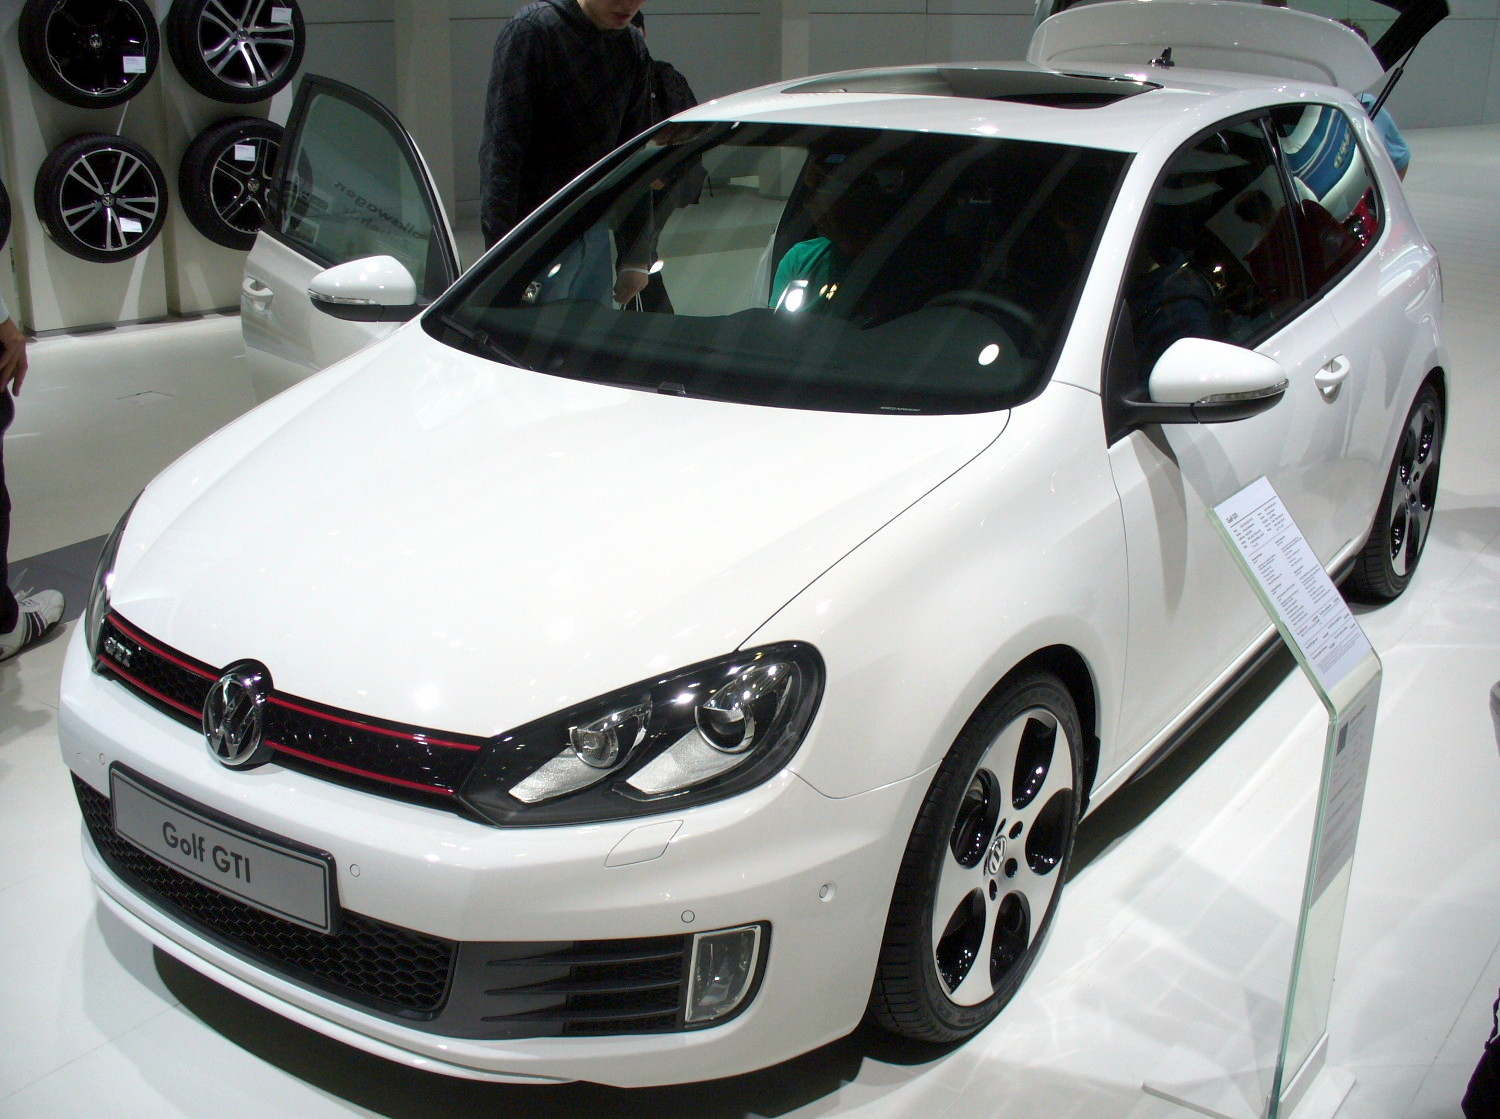 file vw golf vi gti jpg wikimedia commons. Black Bedroom Furniture Sets. Home Design Ideas